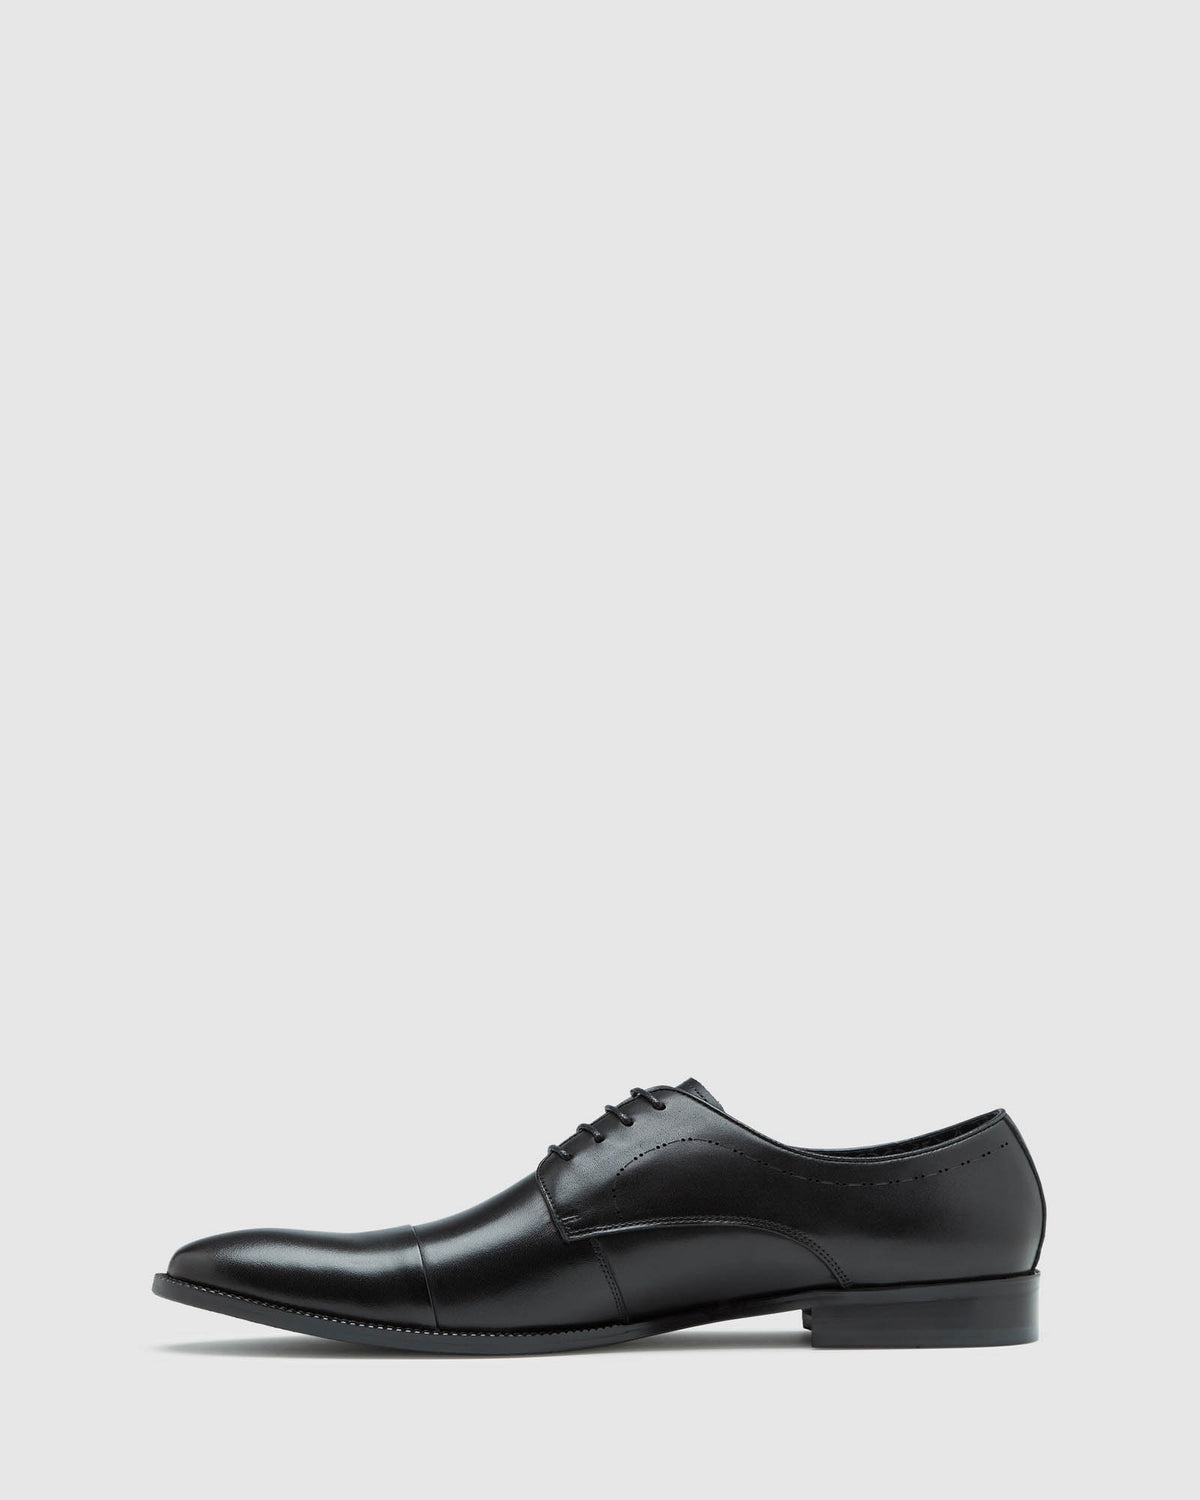 LEWIS LEATHER DERBY SHOE BLACK